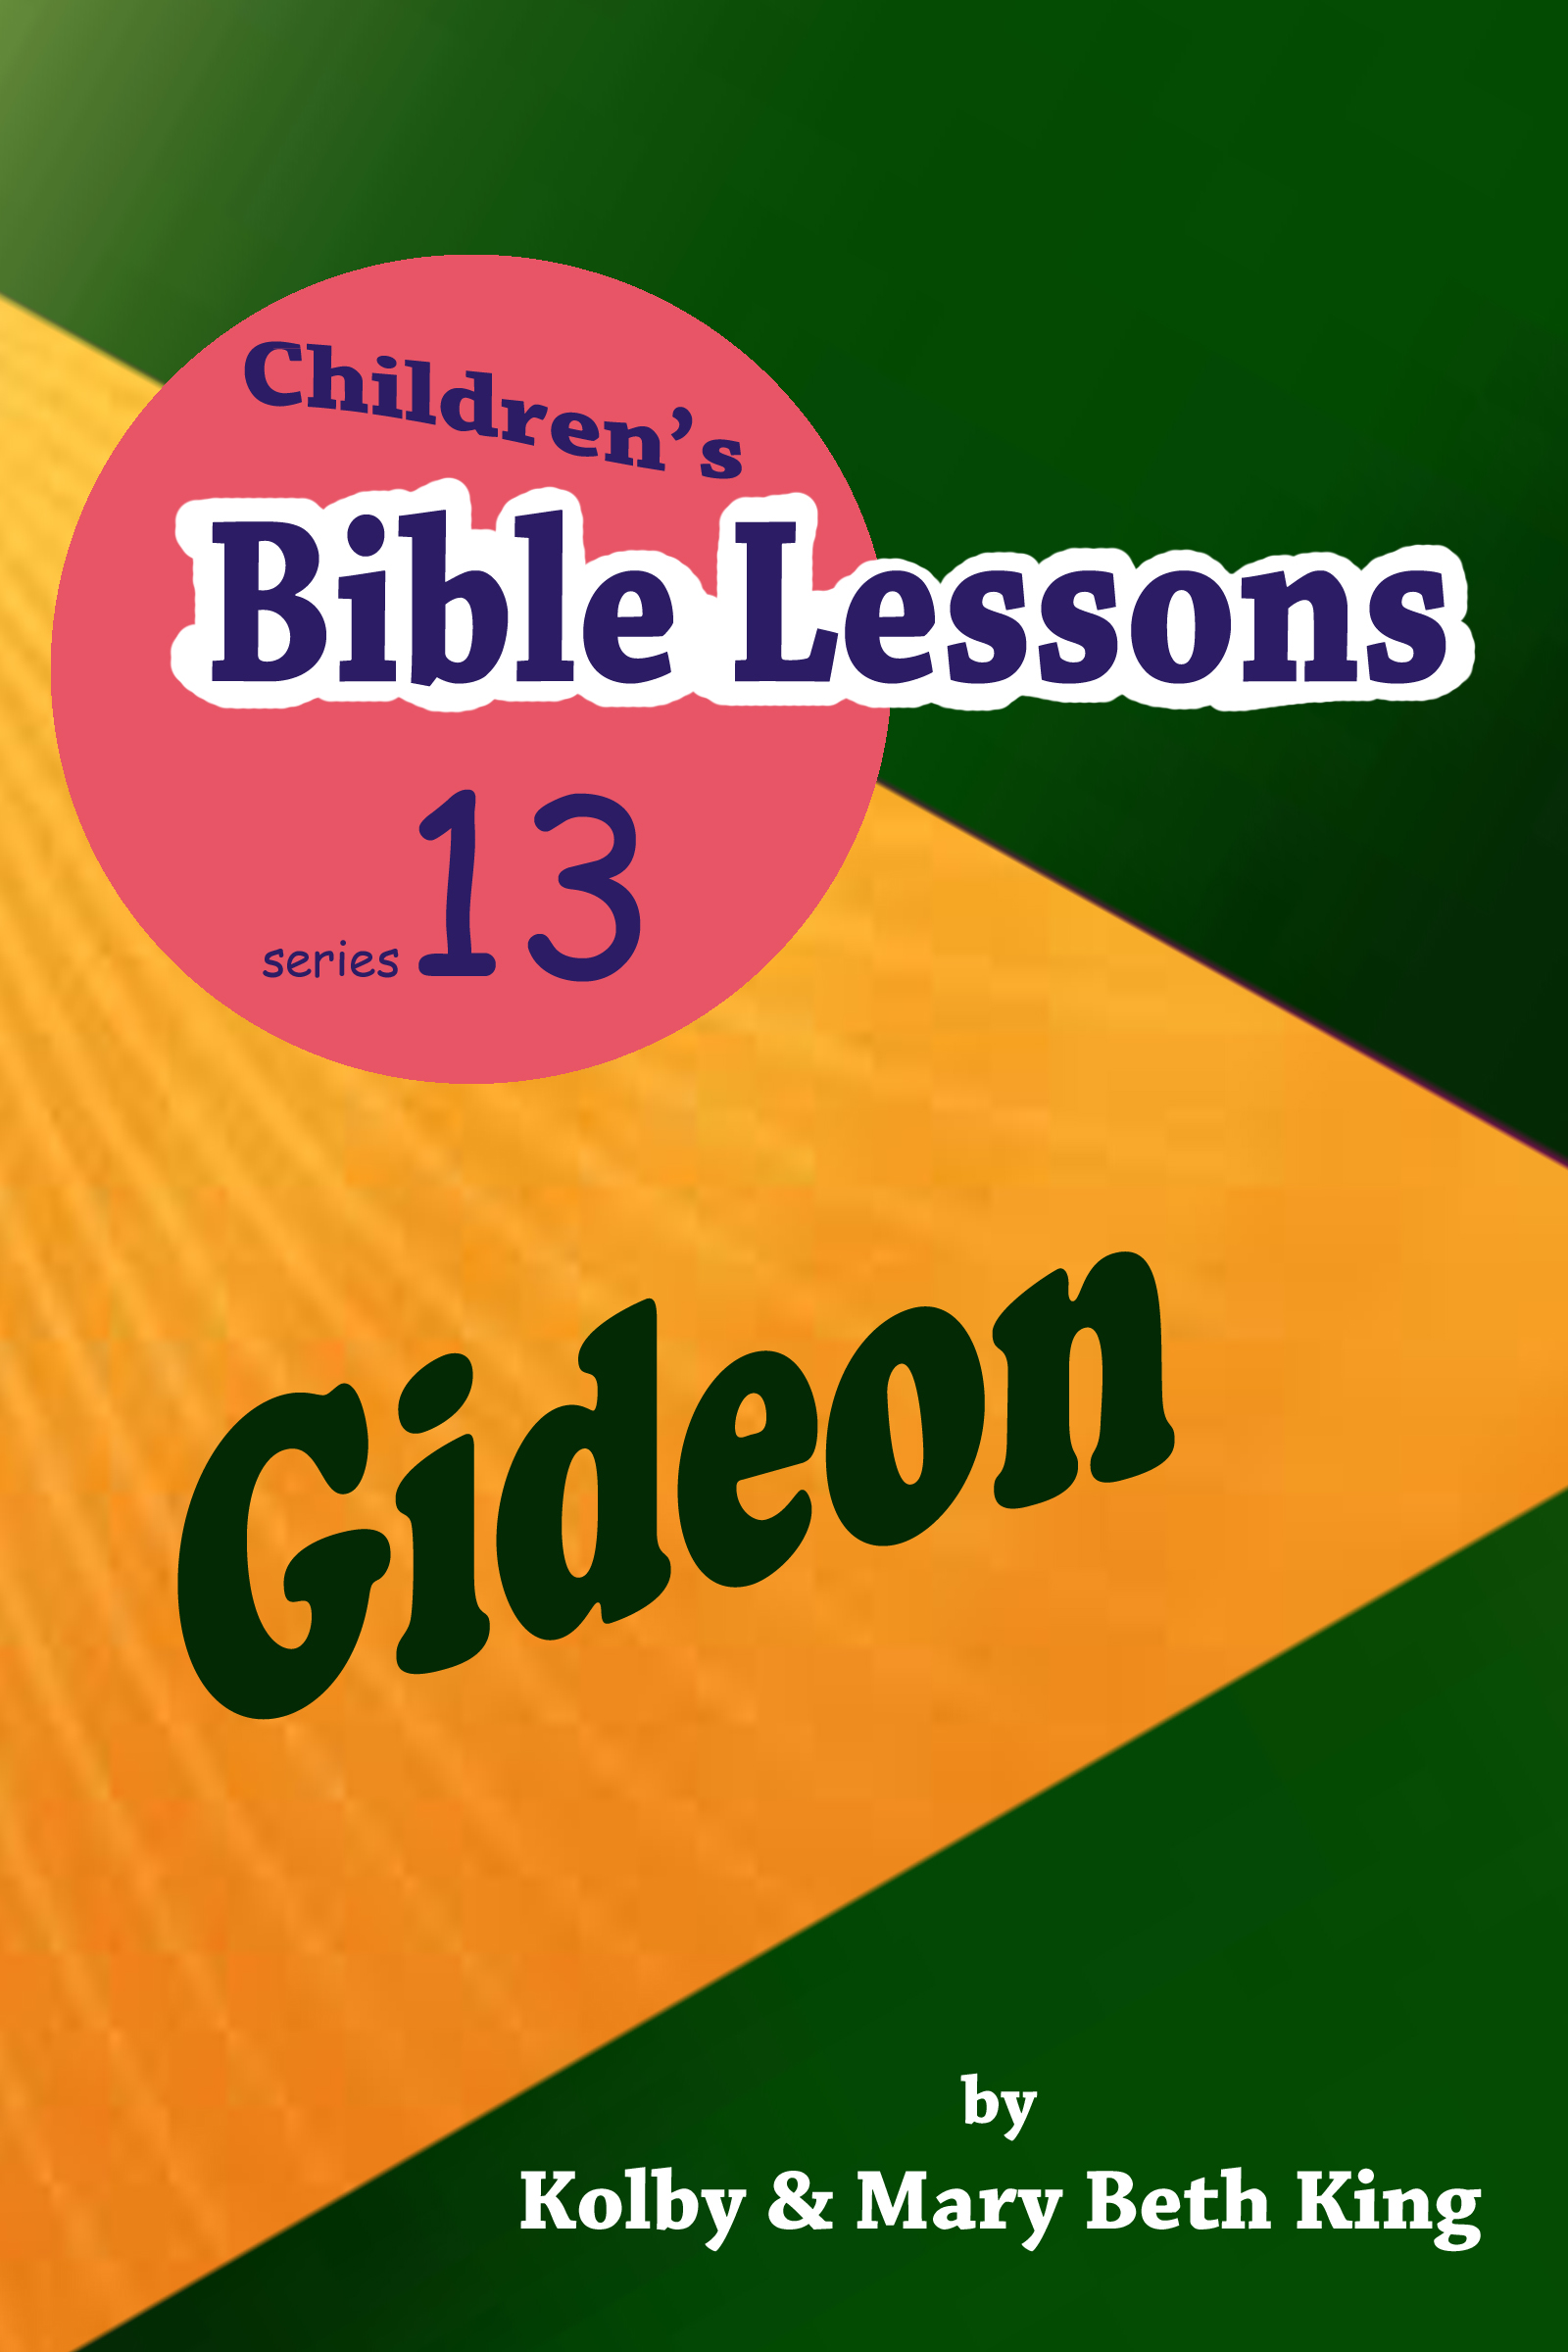 Children's Bible Lessons: Gideon, an Ebook by Kolby & Mary Beth King